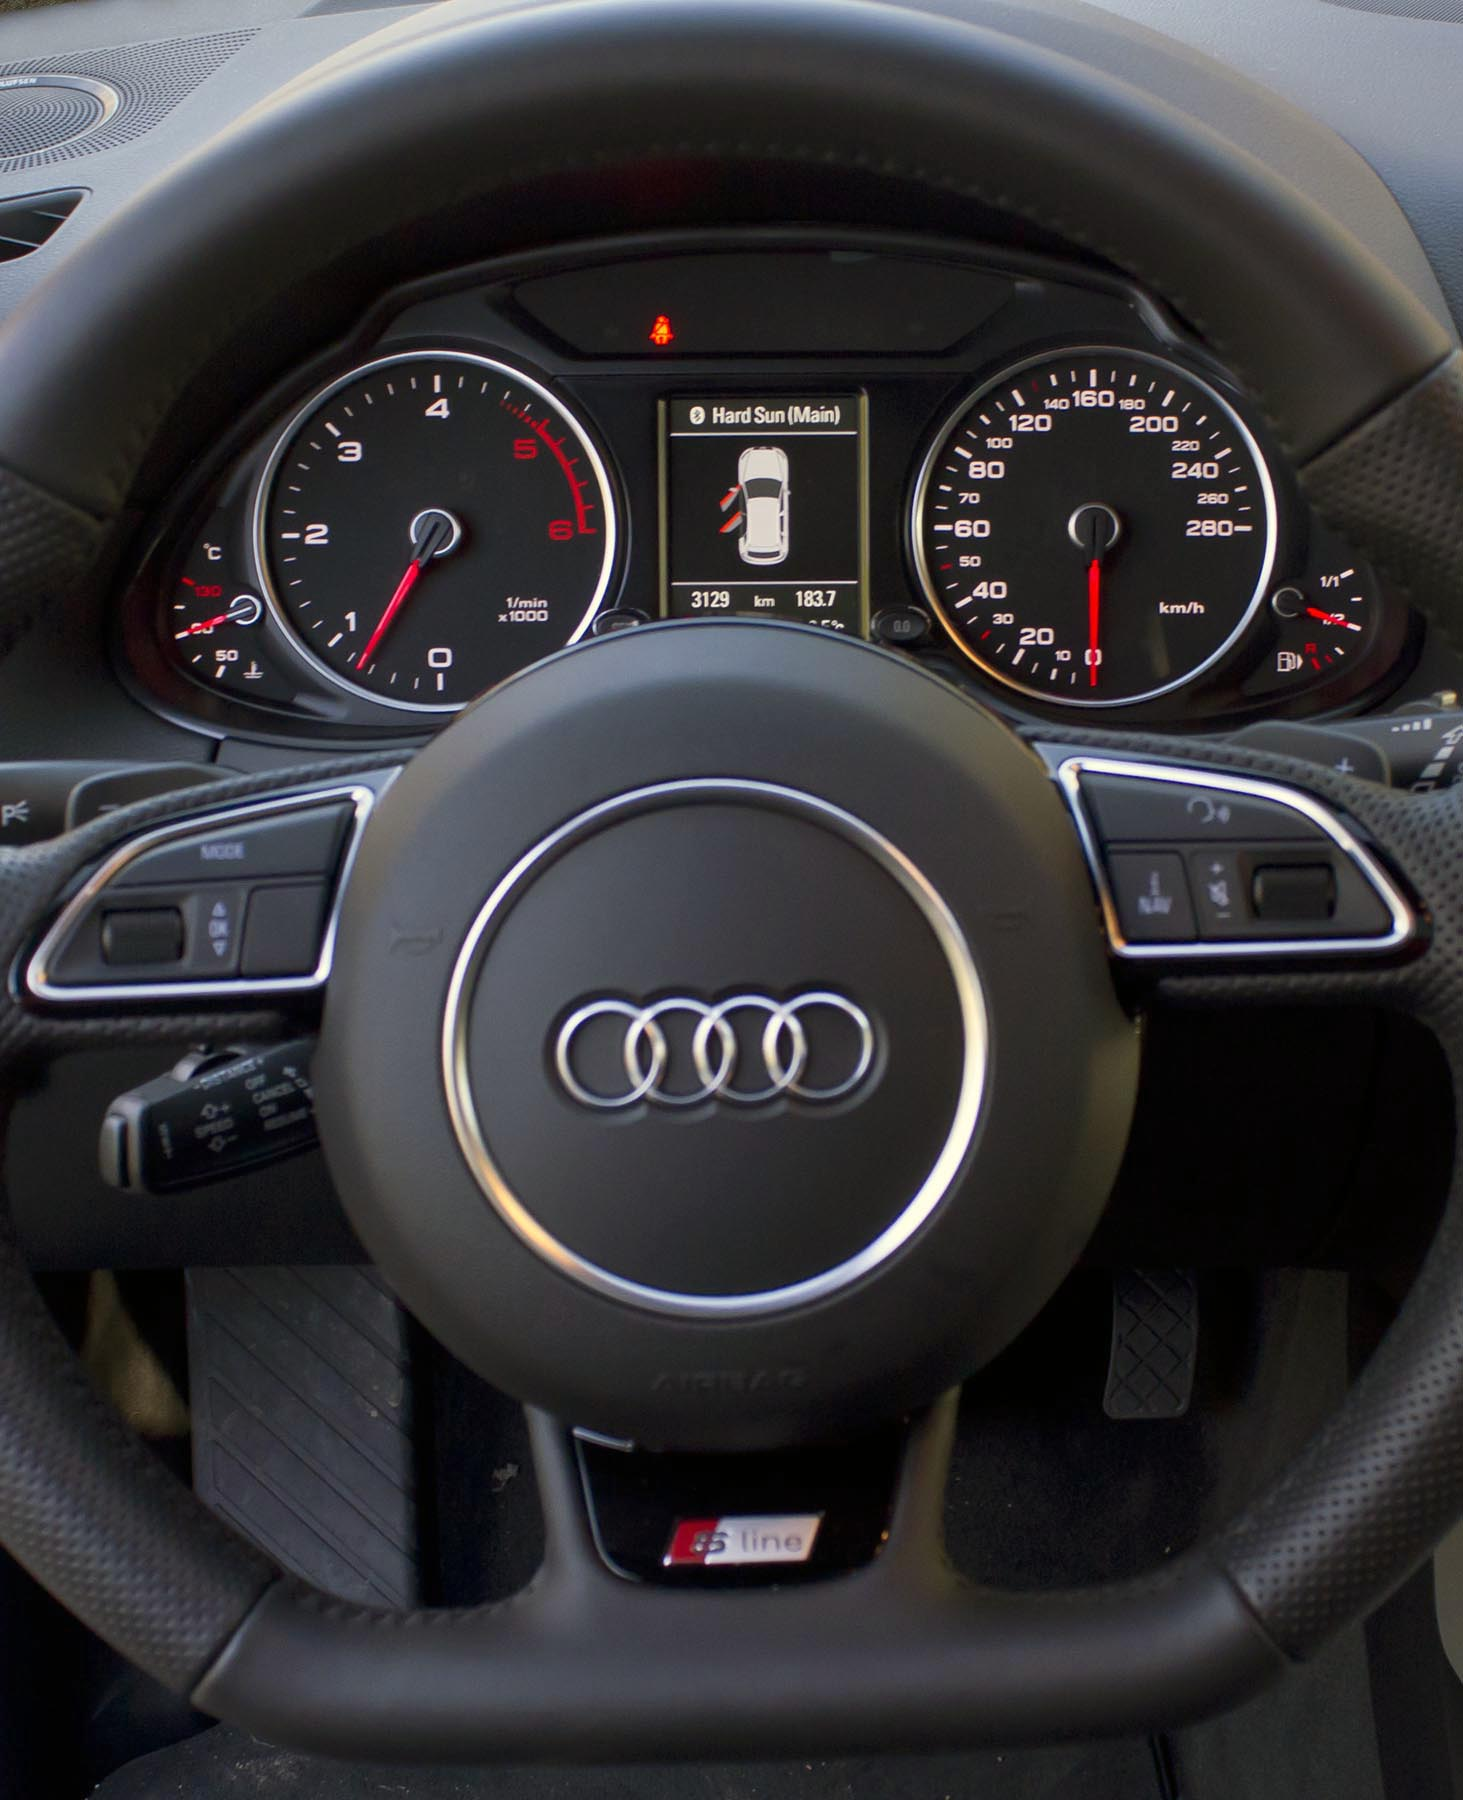 Used Vehicle Review: Audi Q5, 2009-2015